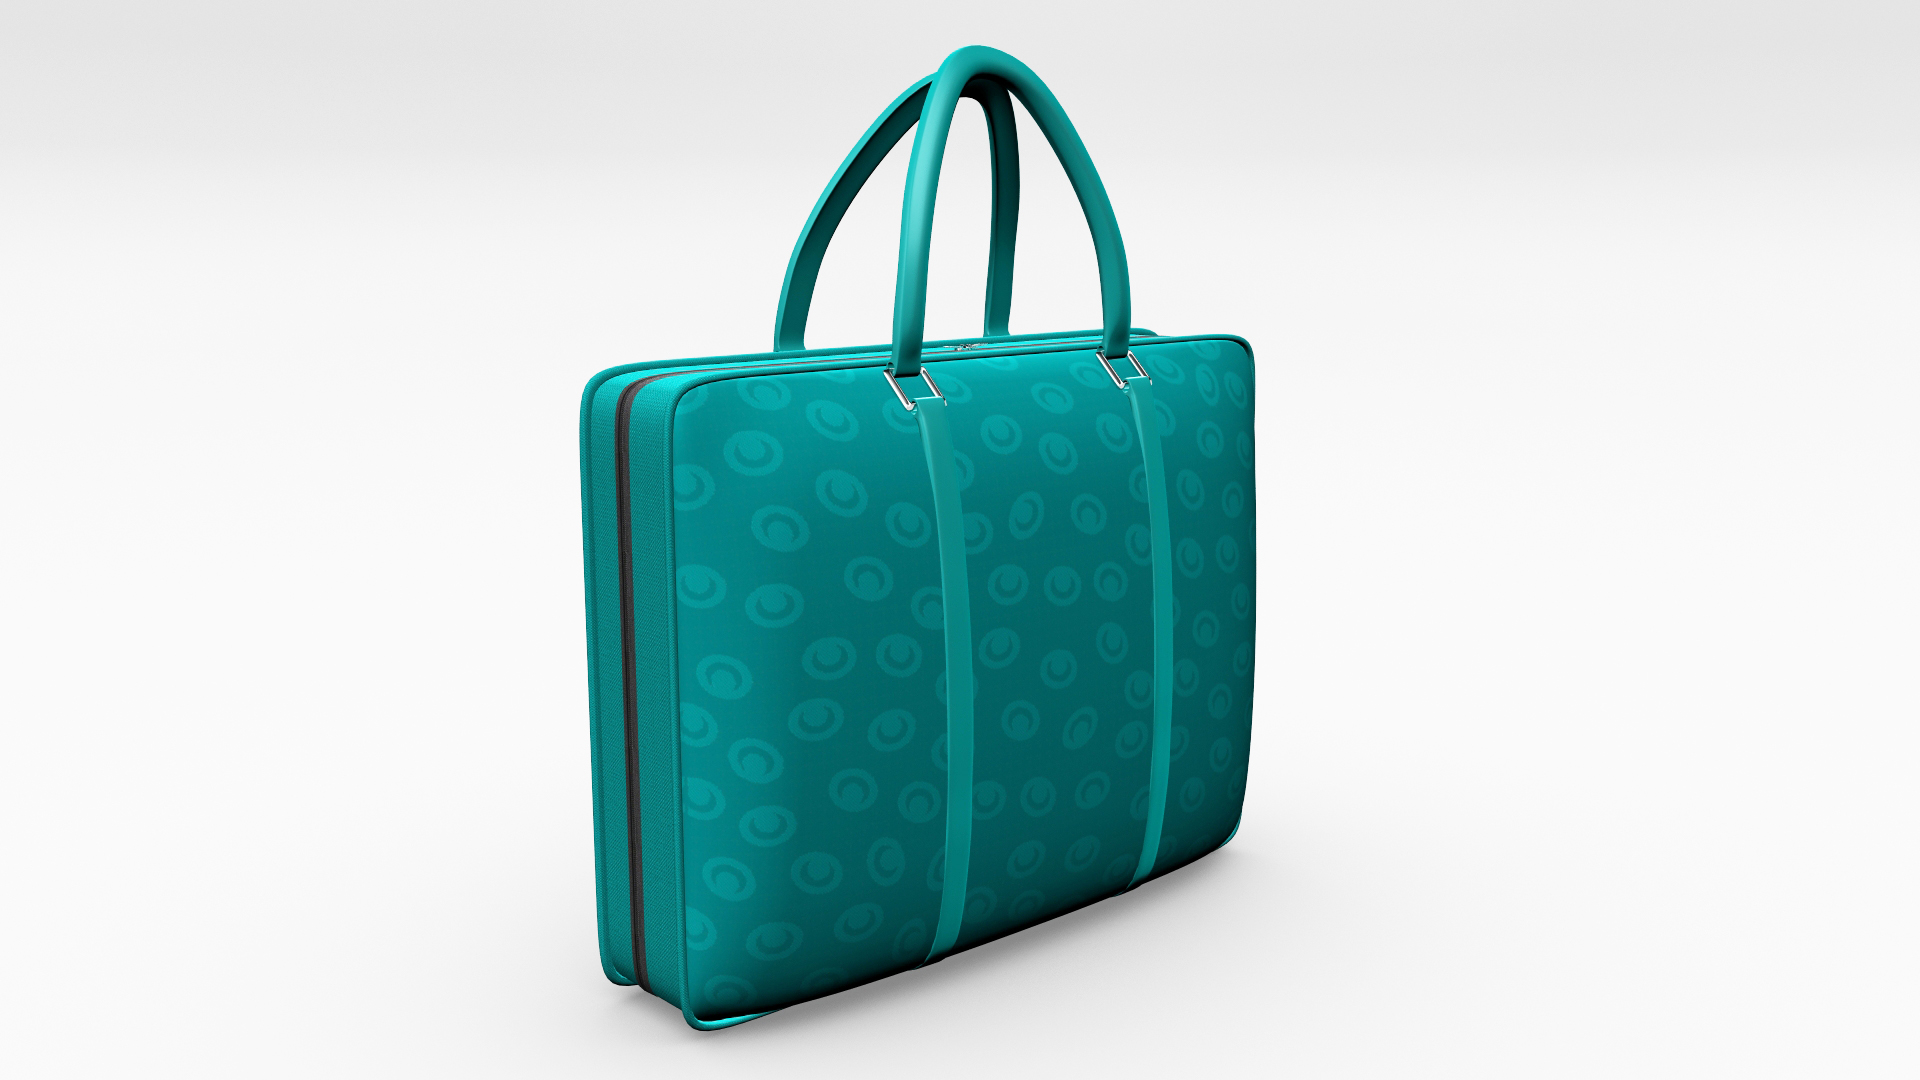 ladies handbag 3d model max fbx ma mb obj 286061